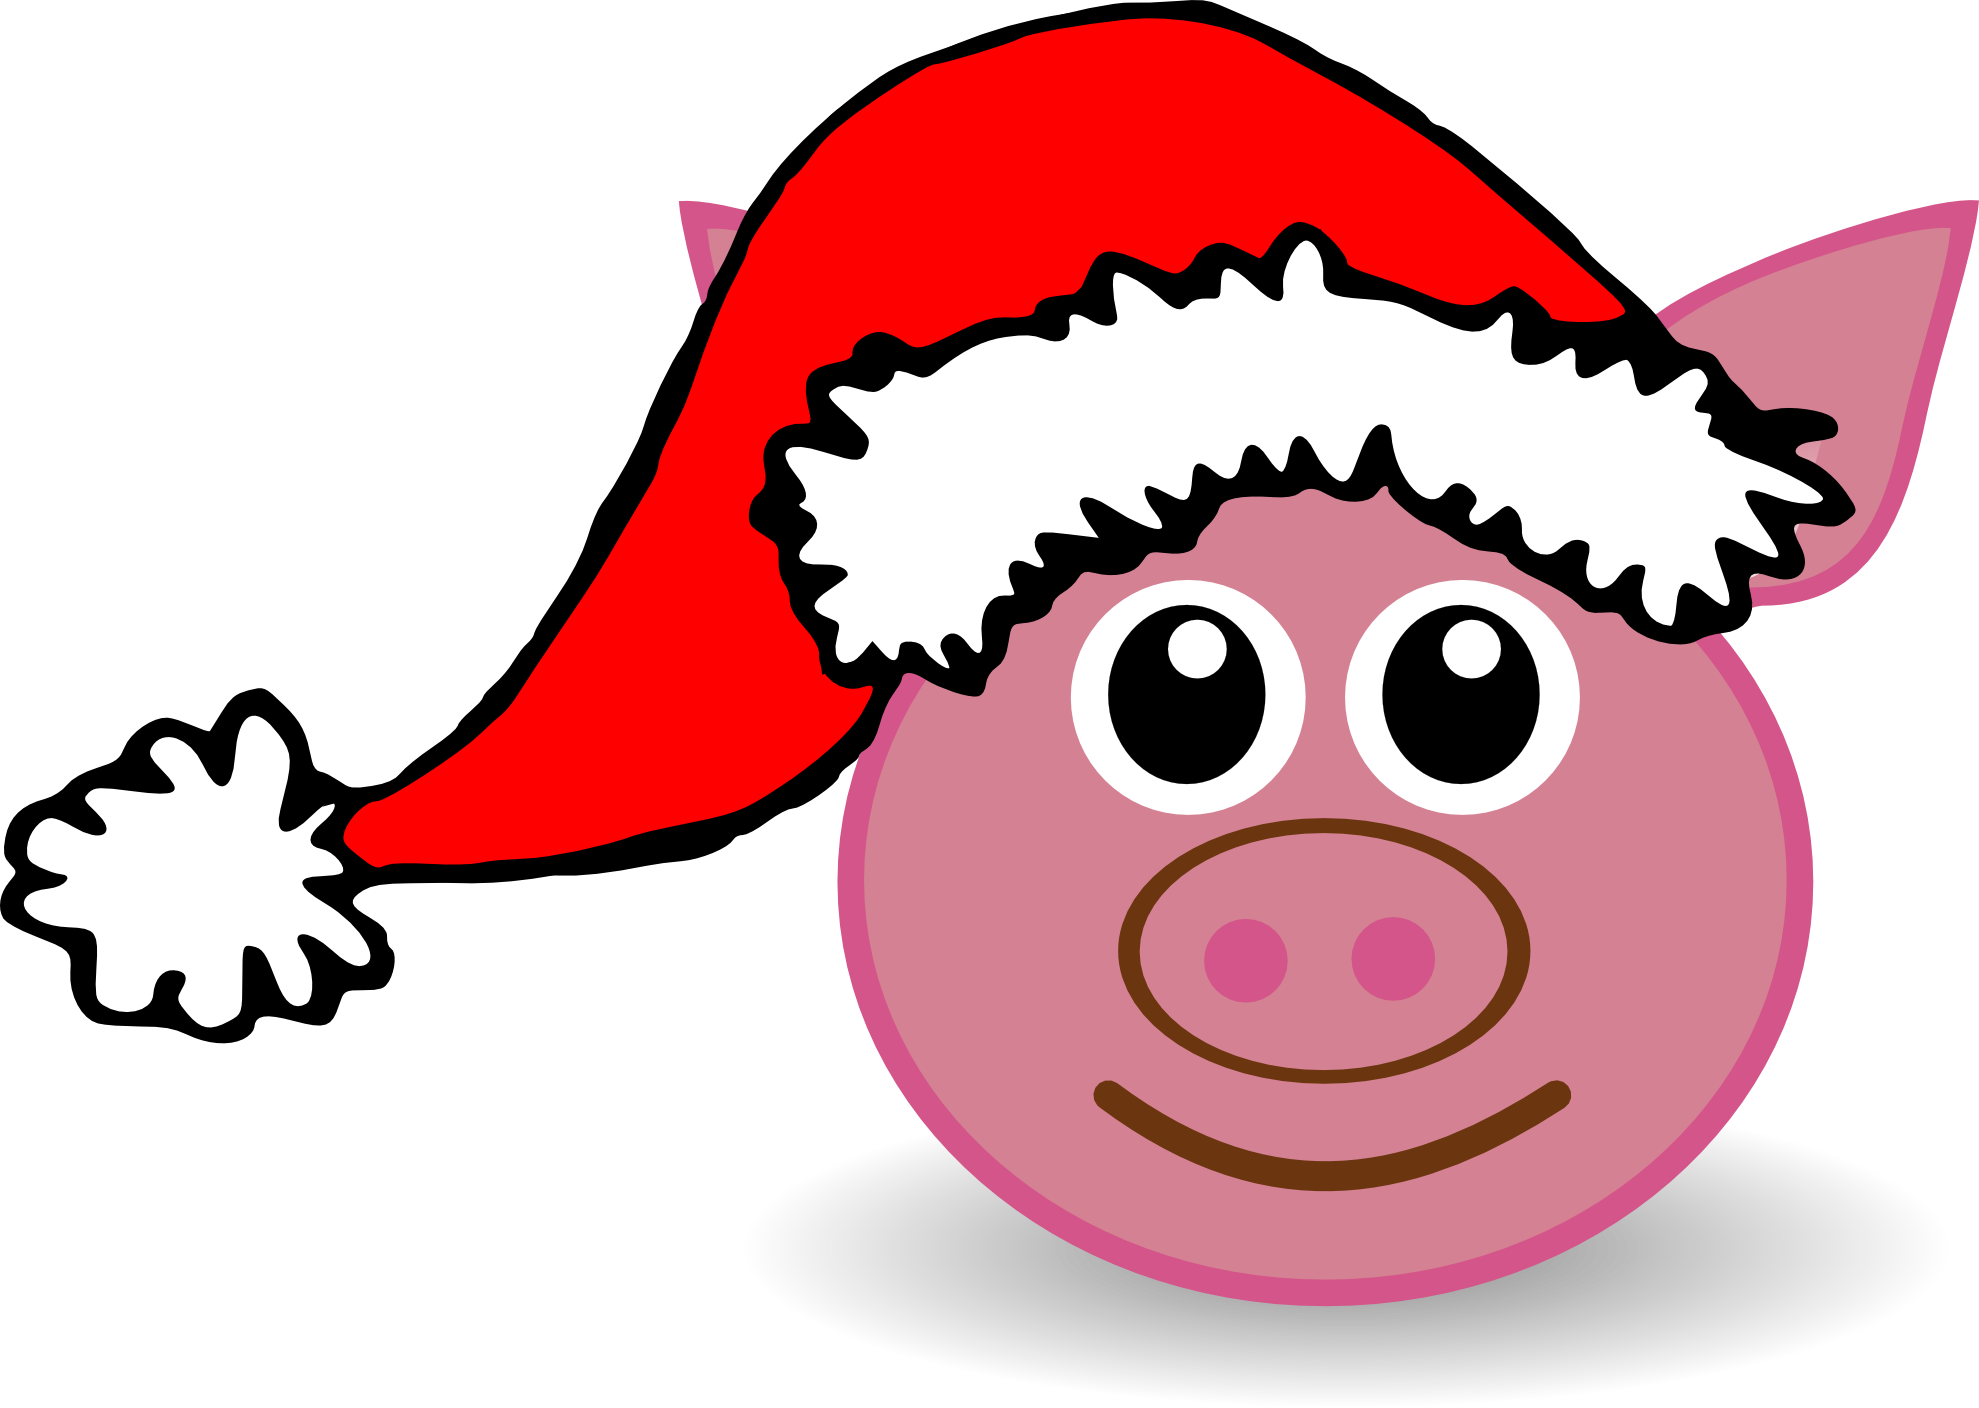 clipartist pluspng.com » Clip Art » palomaironique pig face cartoon pink - Pig Face PNG HD